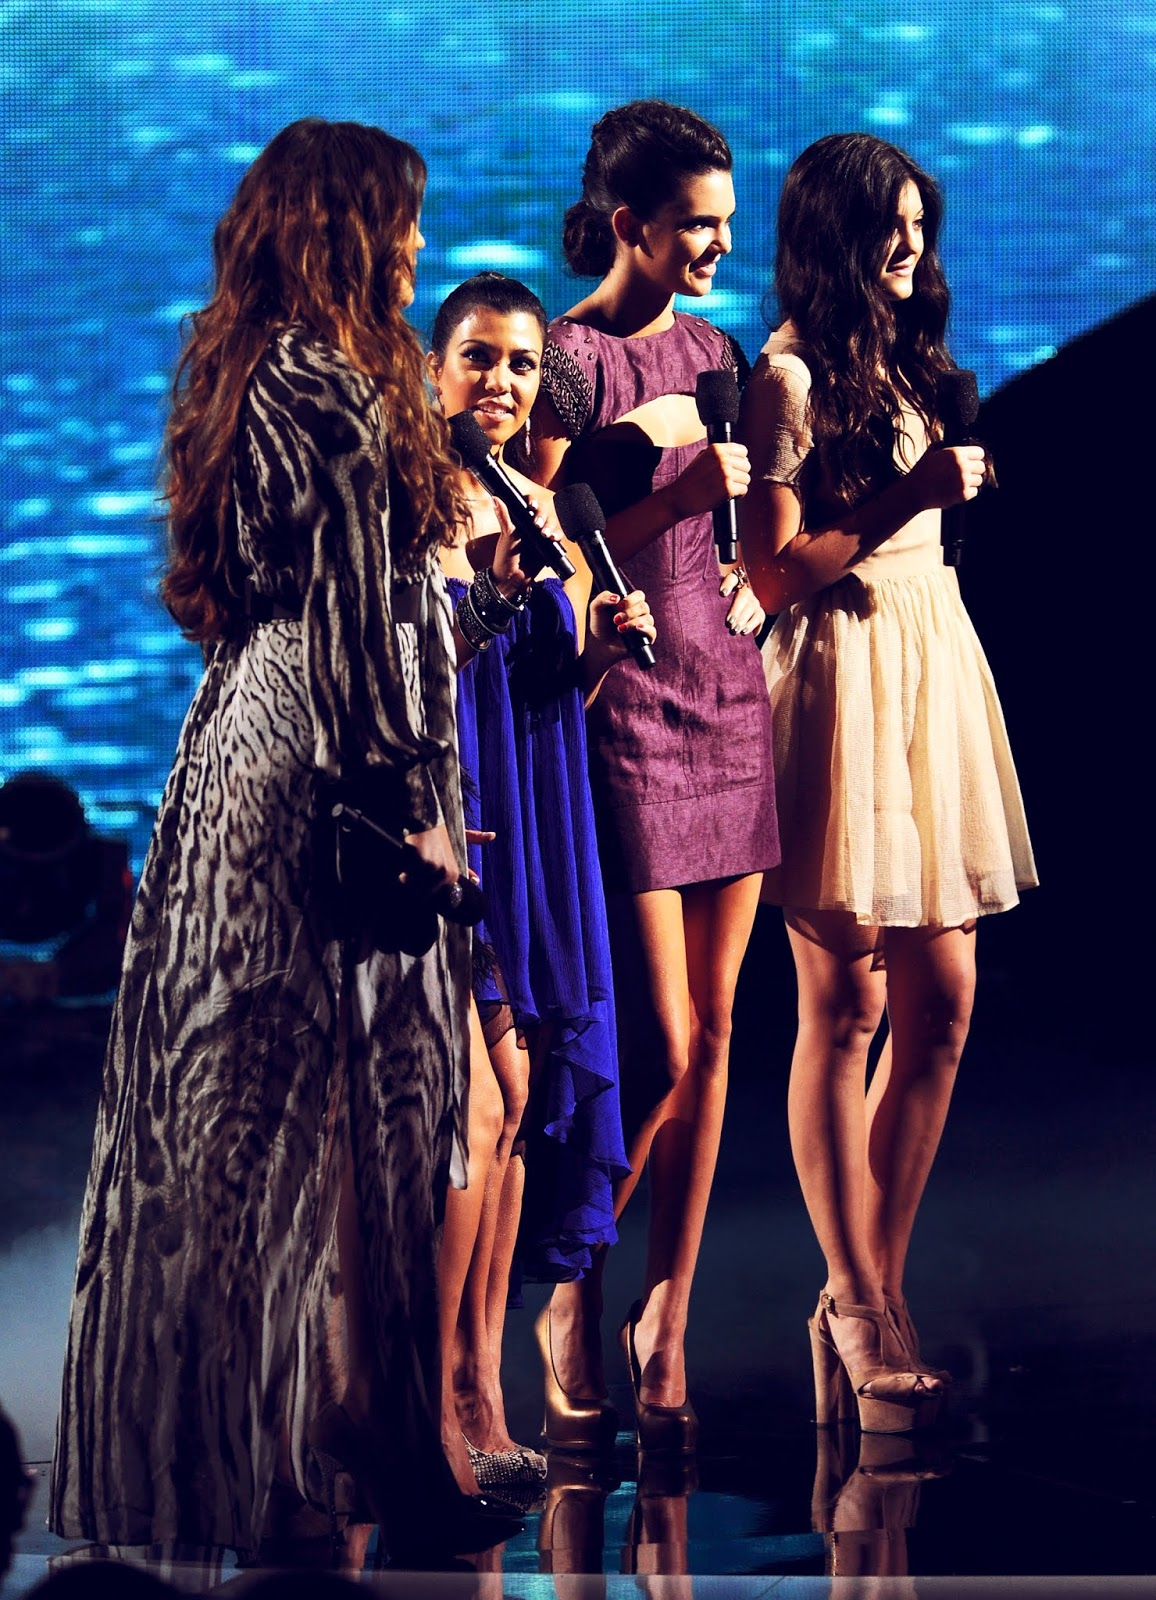 12 - Teen Choice Awards in August 11, 2011